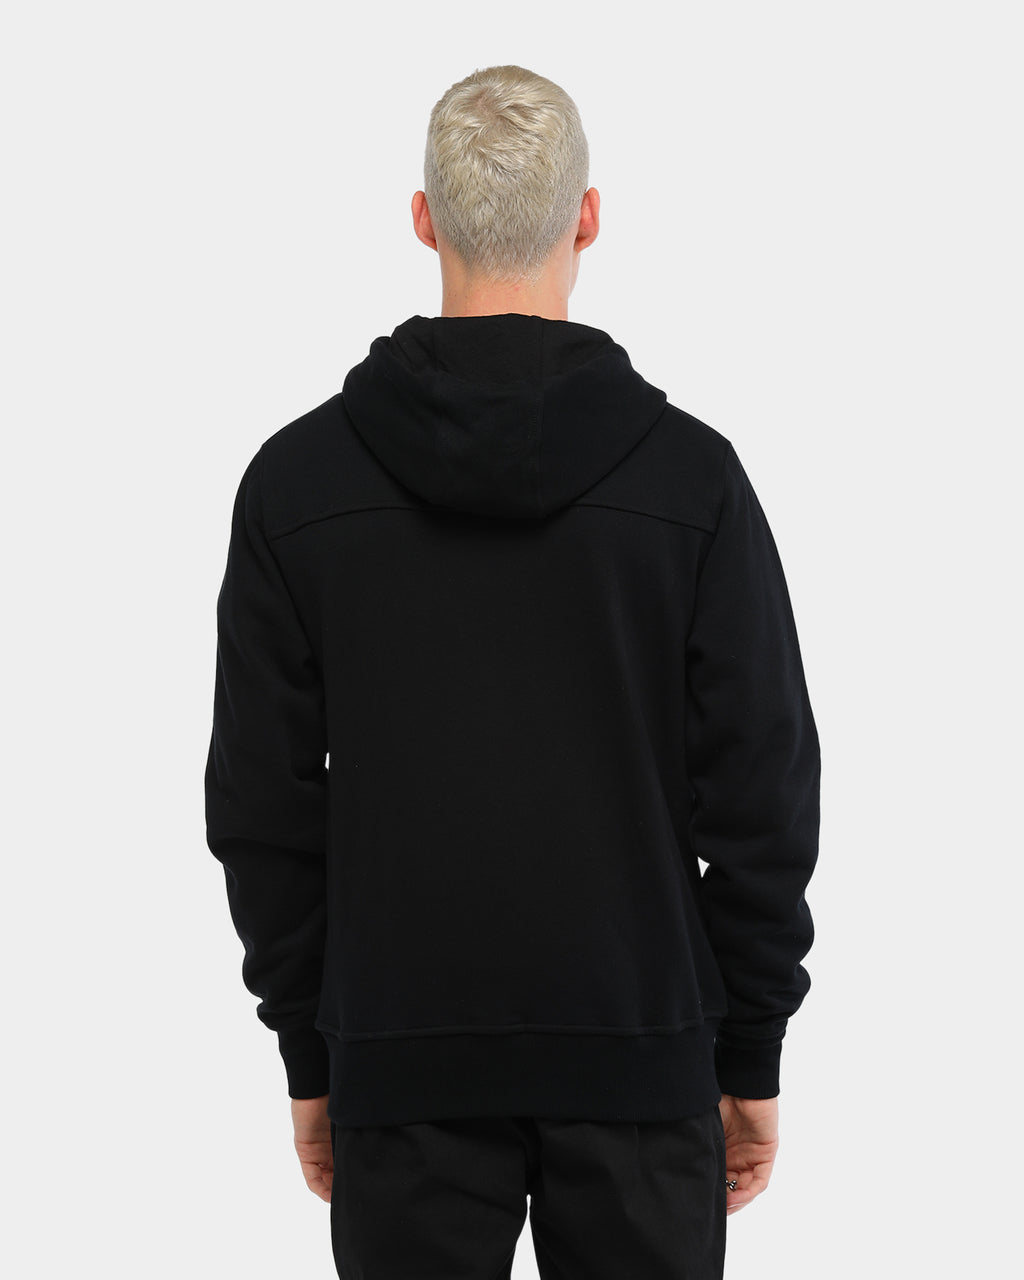 Carré Cible Zip Up Hoodie Black